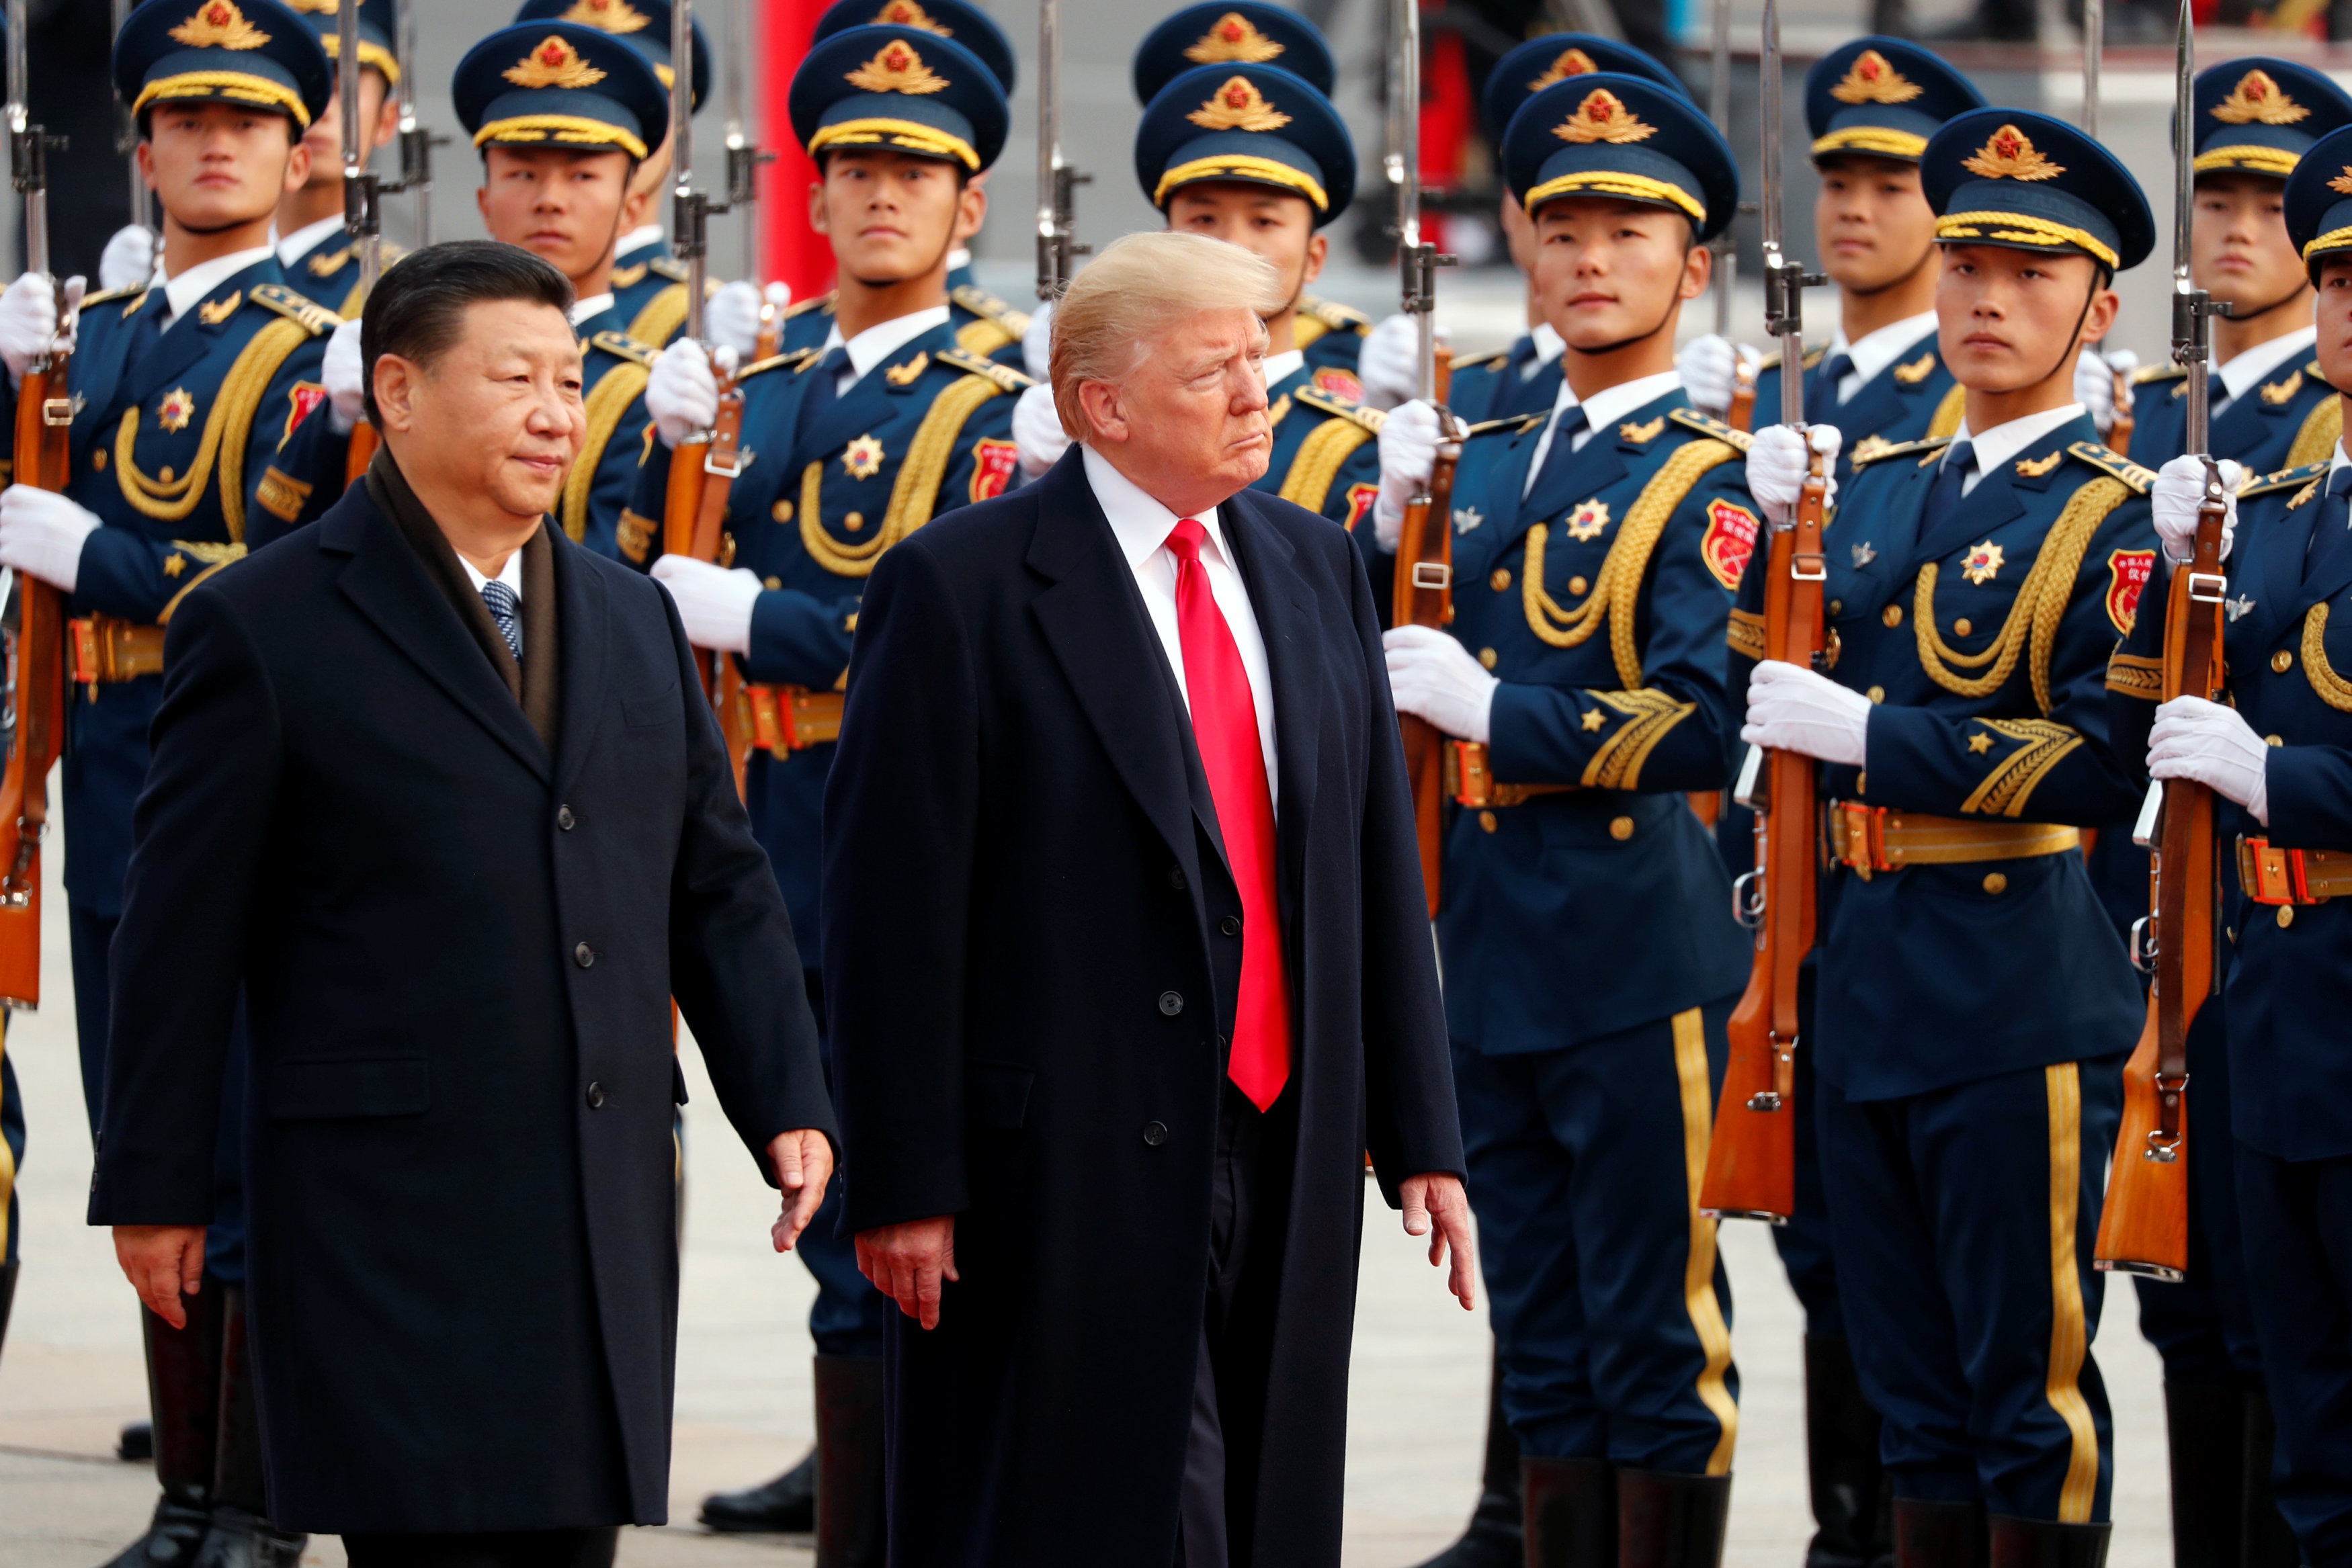 In Beijing, Trump presses China on North Korea and trade